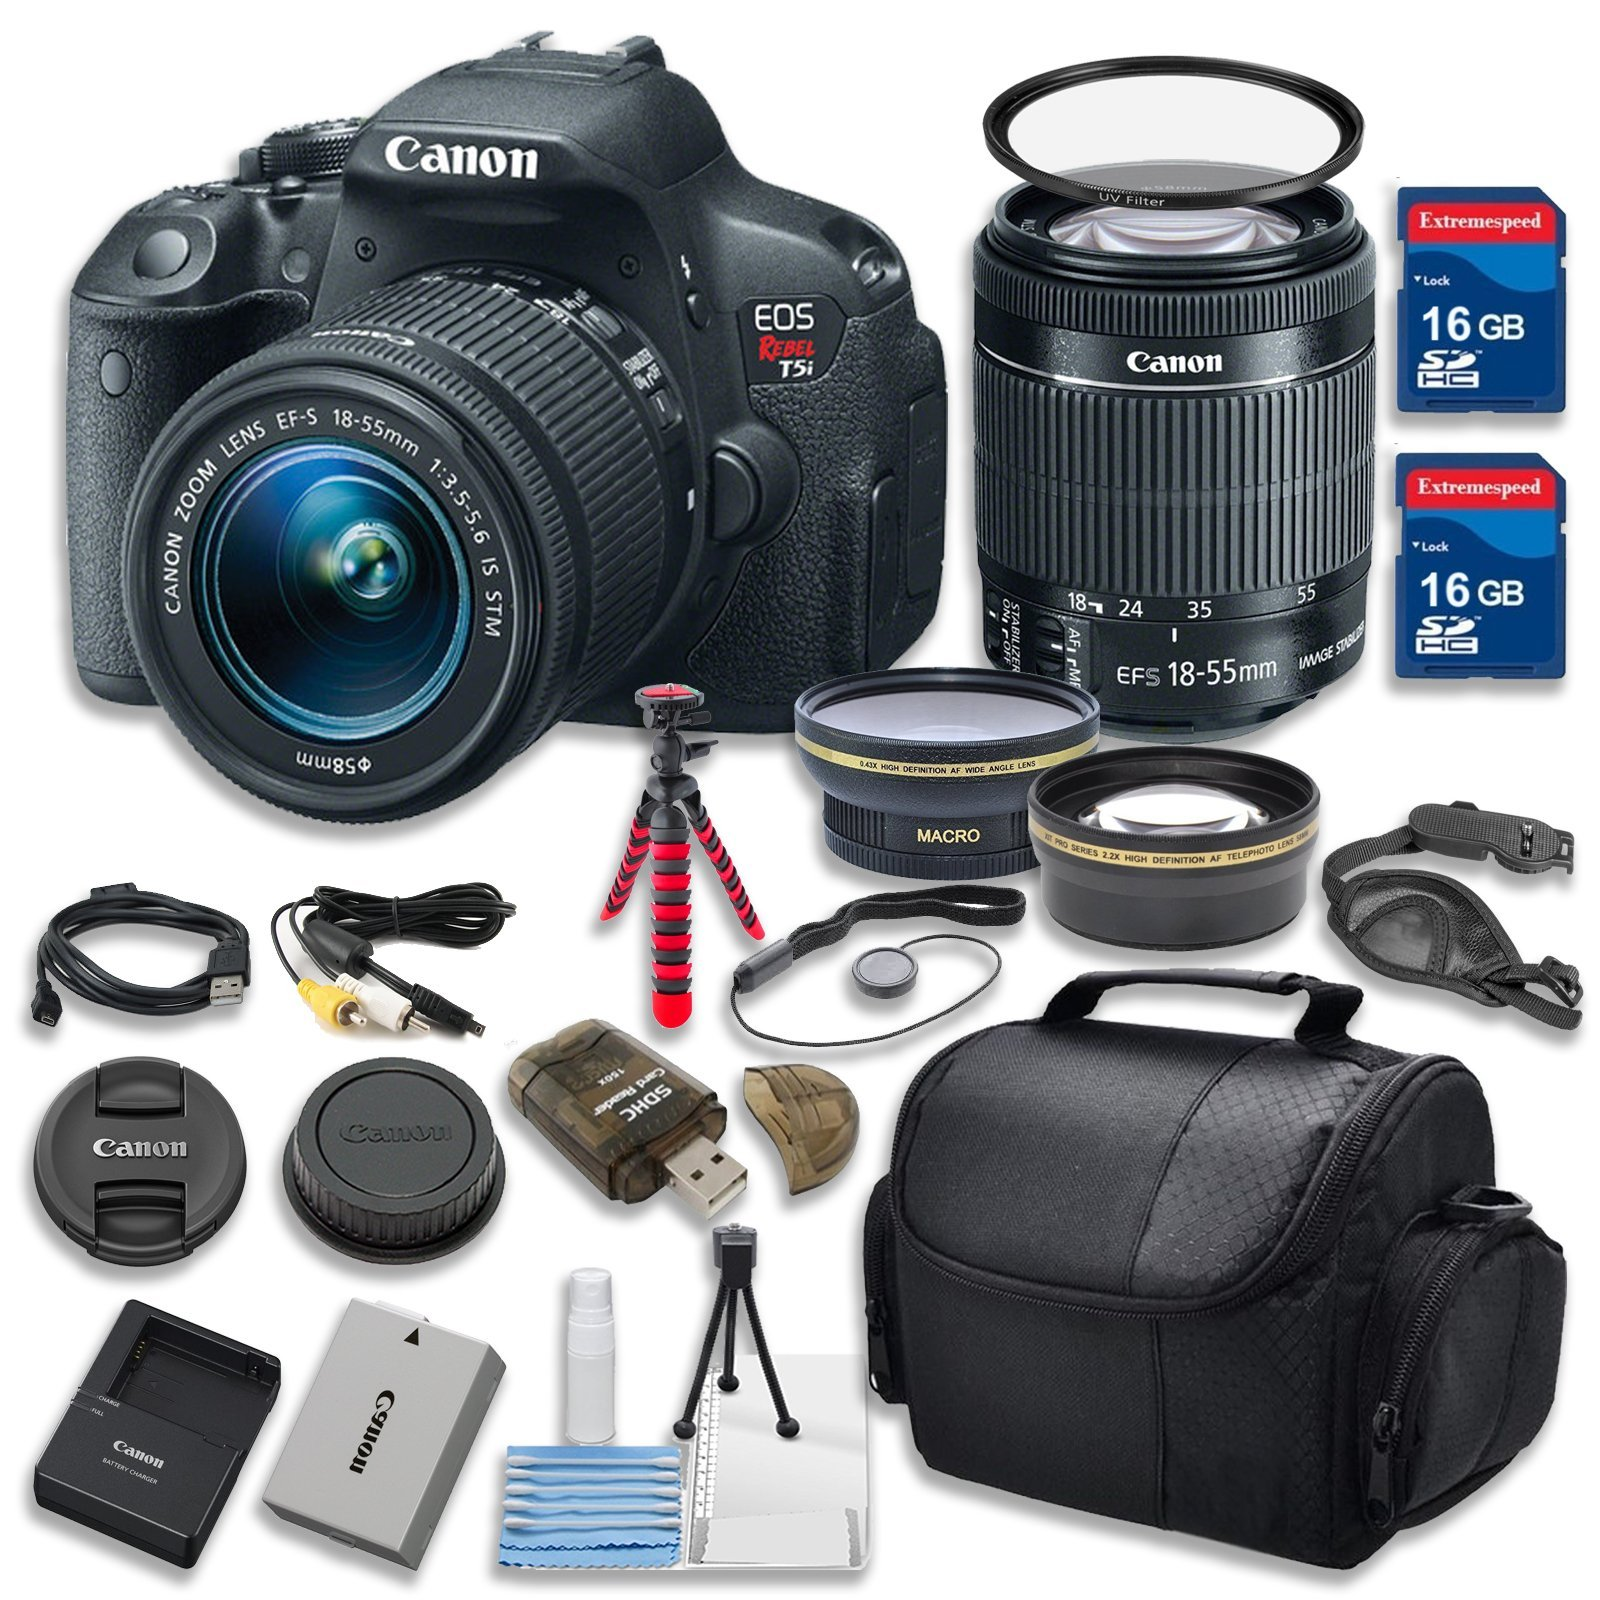 Canon EOS Rebel T5i 18.0 MP CMOS Digital Camera HD Video w/ EF-S 18-55mm f/3.5-5.6 IS STM Zoom Lens Celltime Exclusive Bundle w/ 14pc Accessory Kit - International Version